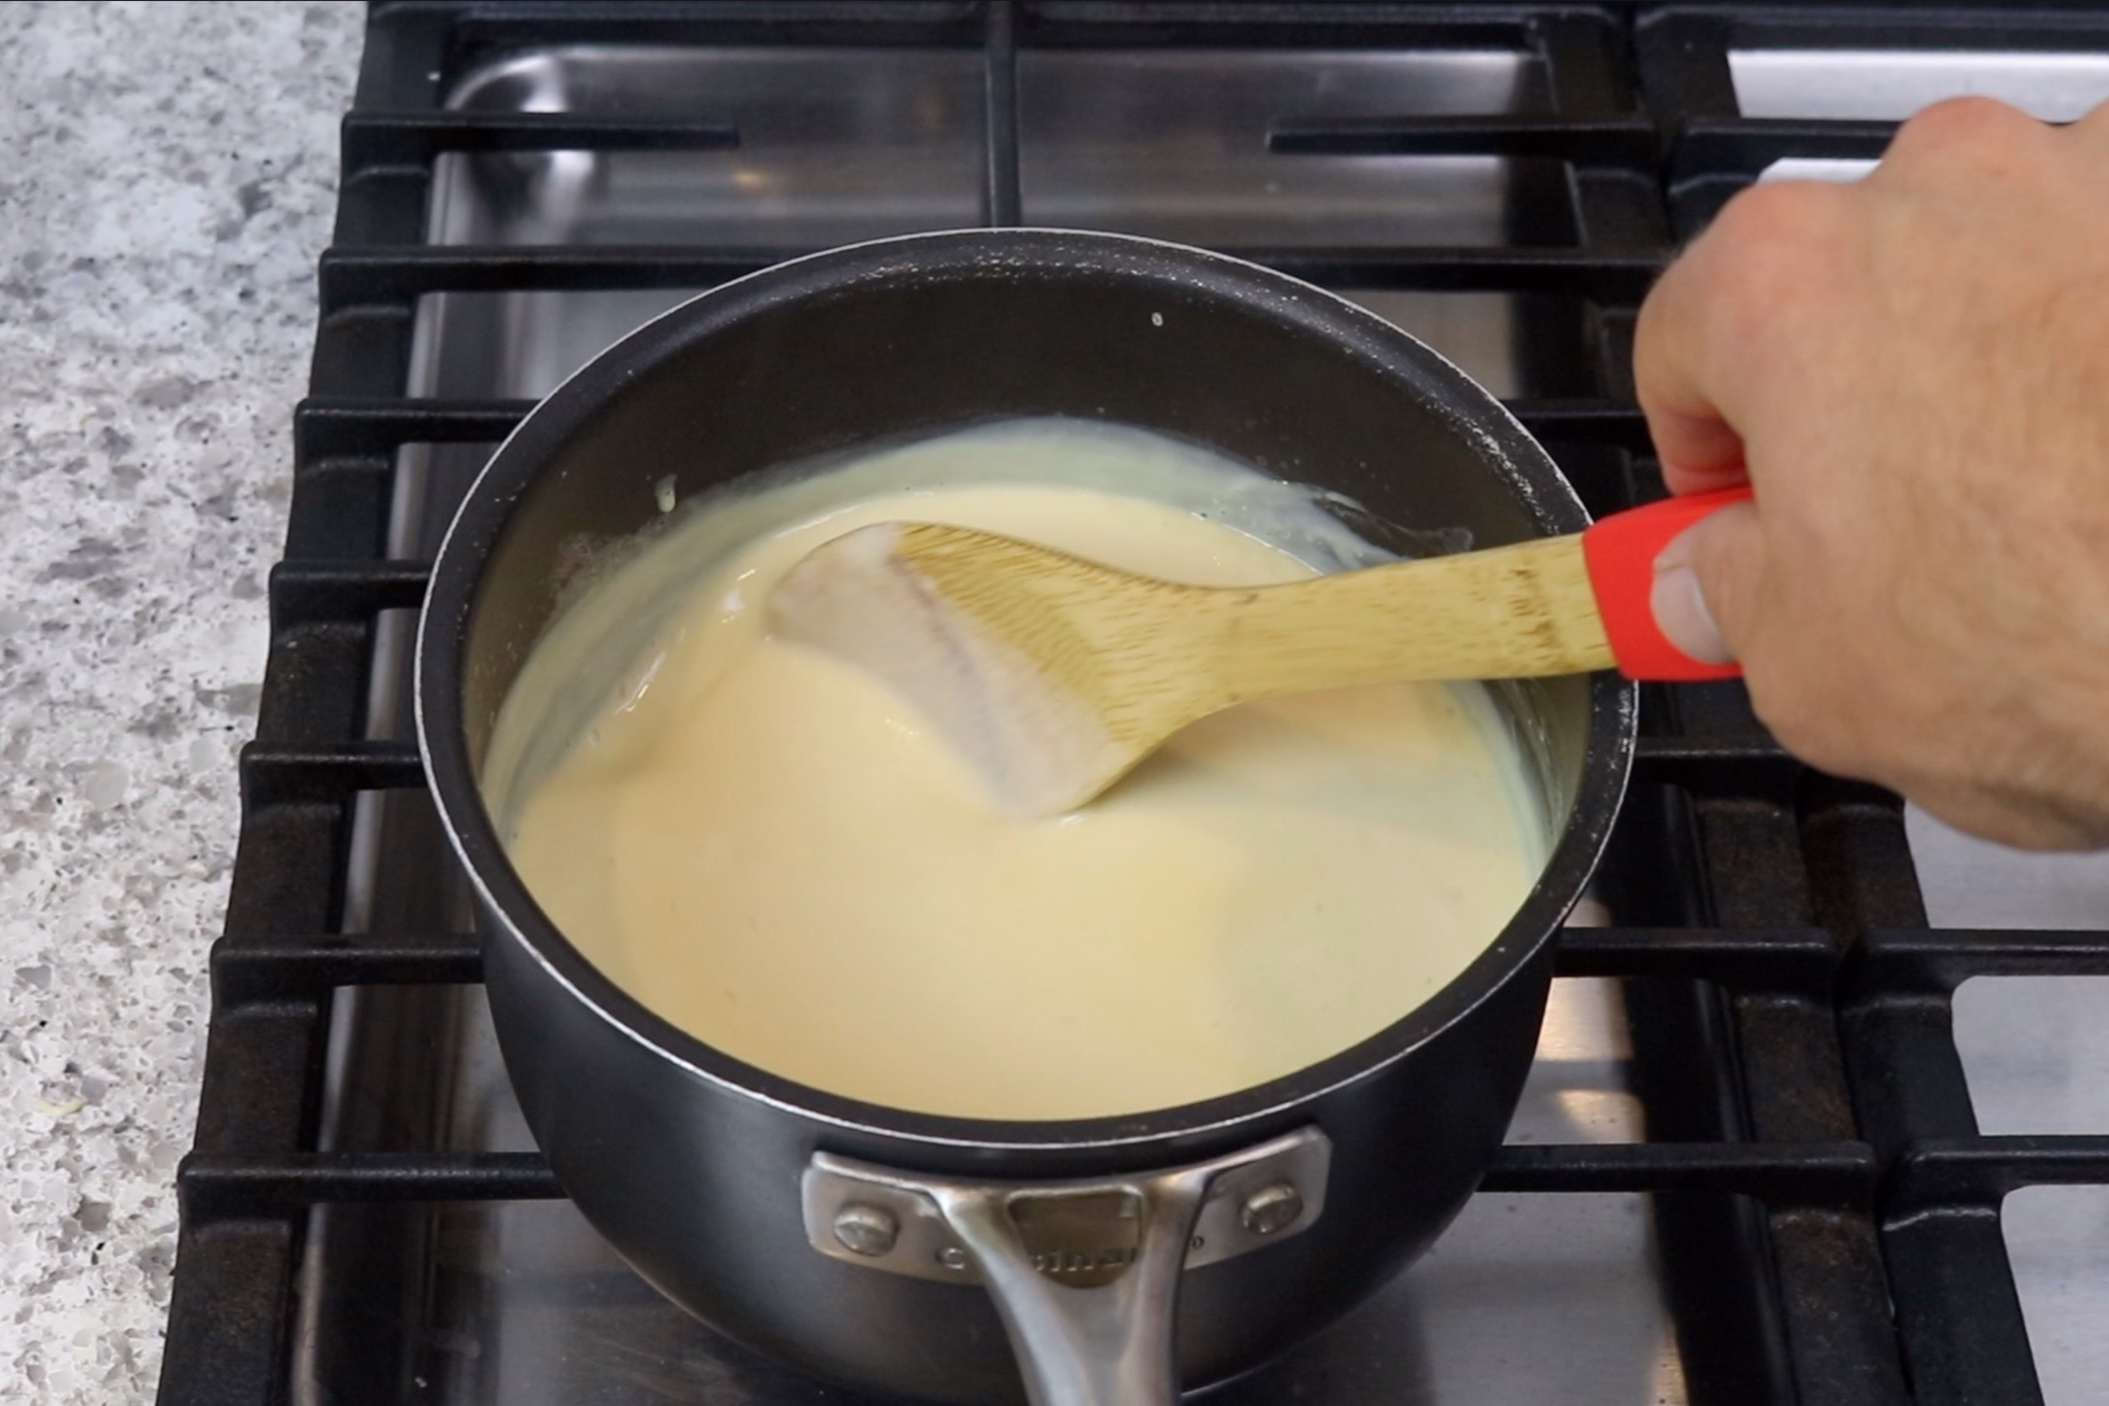 5. Return the saucepan to the stove and cook over medium-low heat stirring constantly. Cook for another 3-4 minutes, but keep the mixture just below a boil or the milk will curdle. -